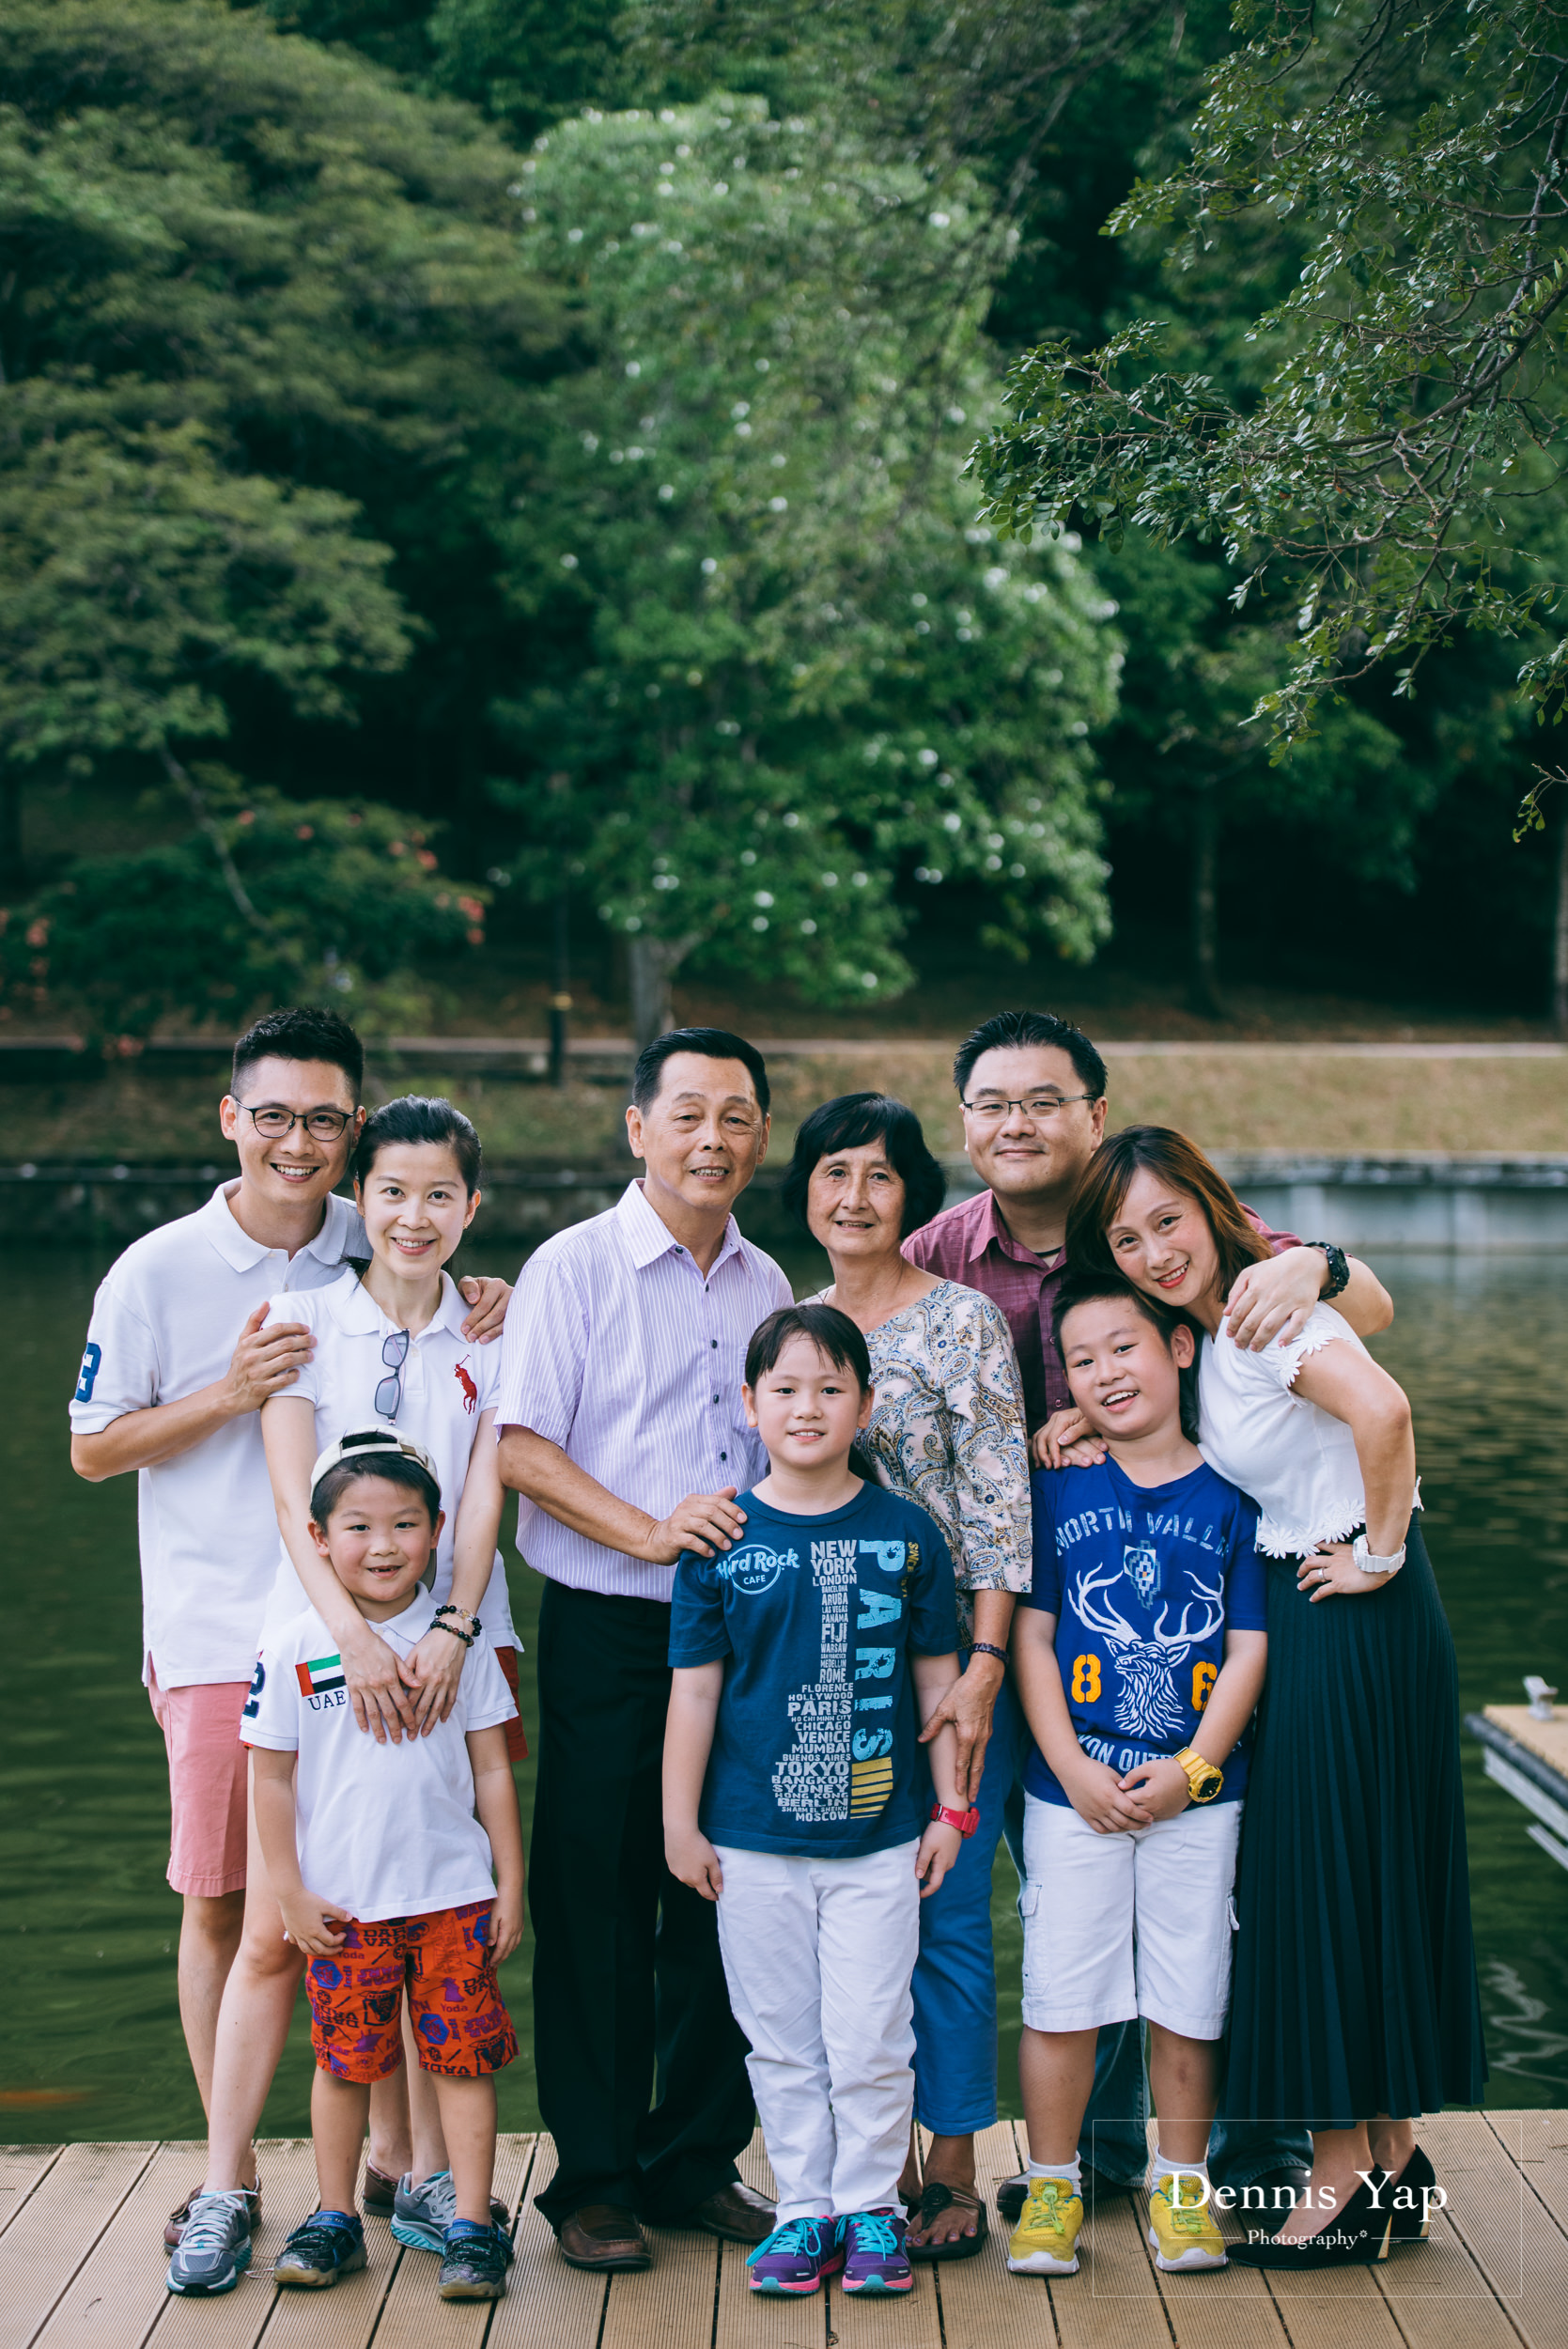 mourice baby 4 in 1 portrait dennis yap photography lake gardens family portrait-9.jpg